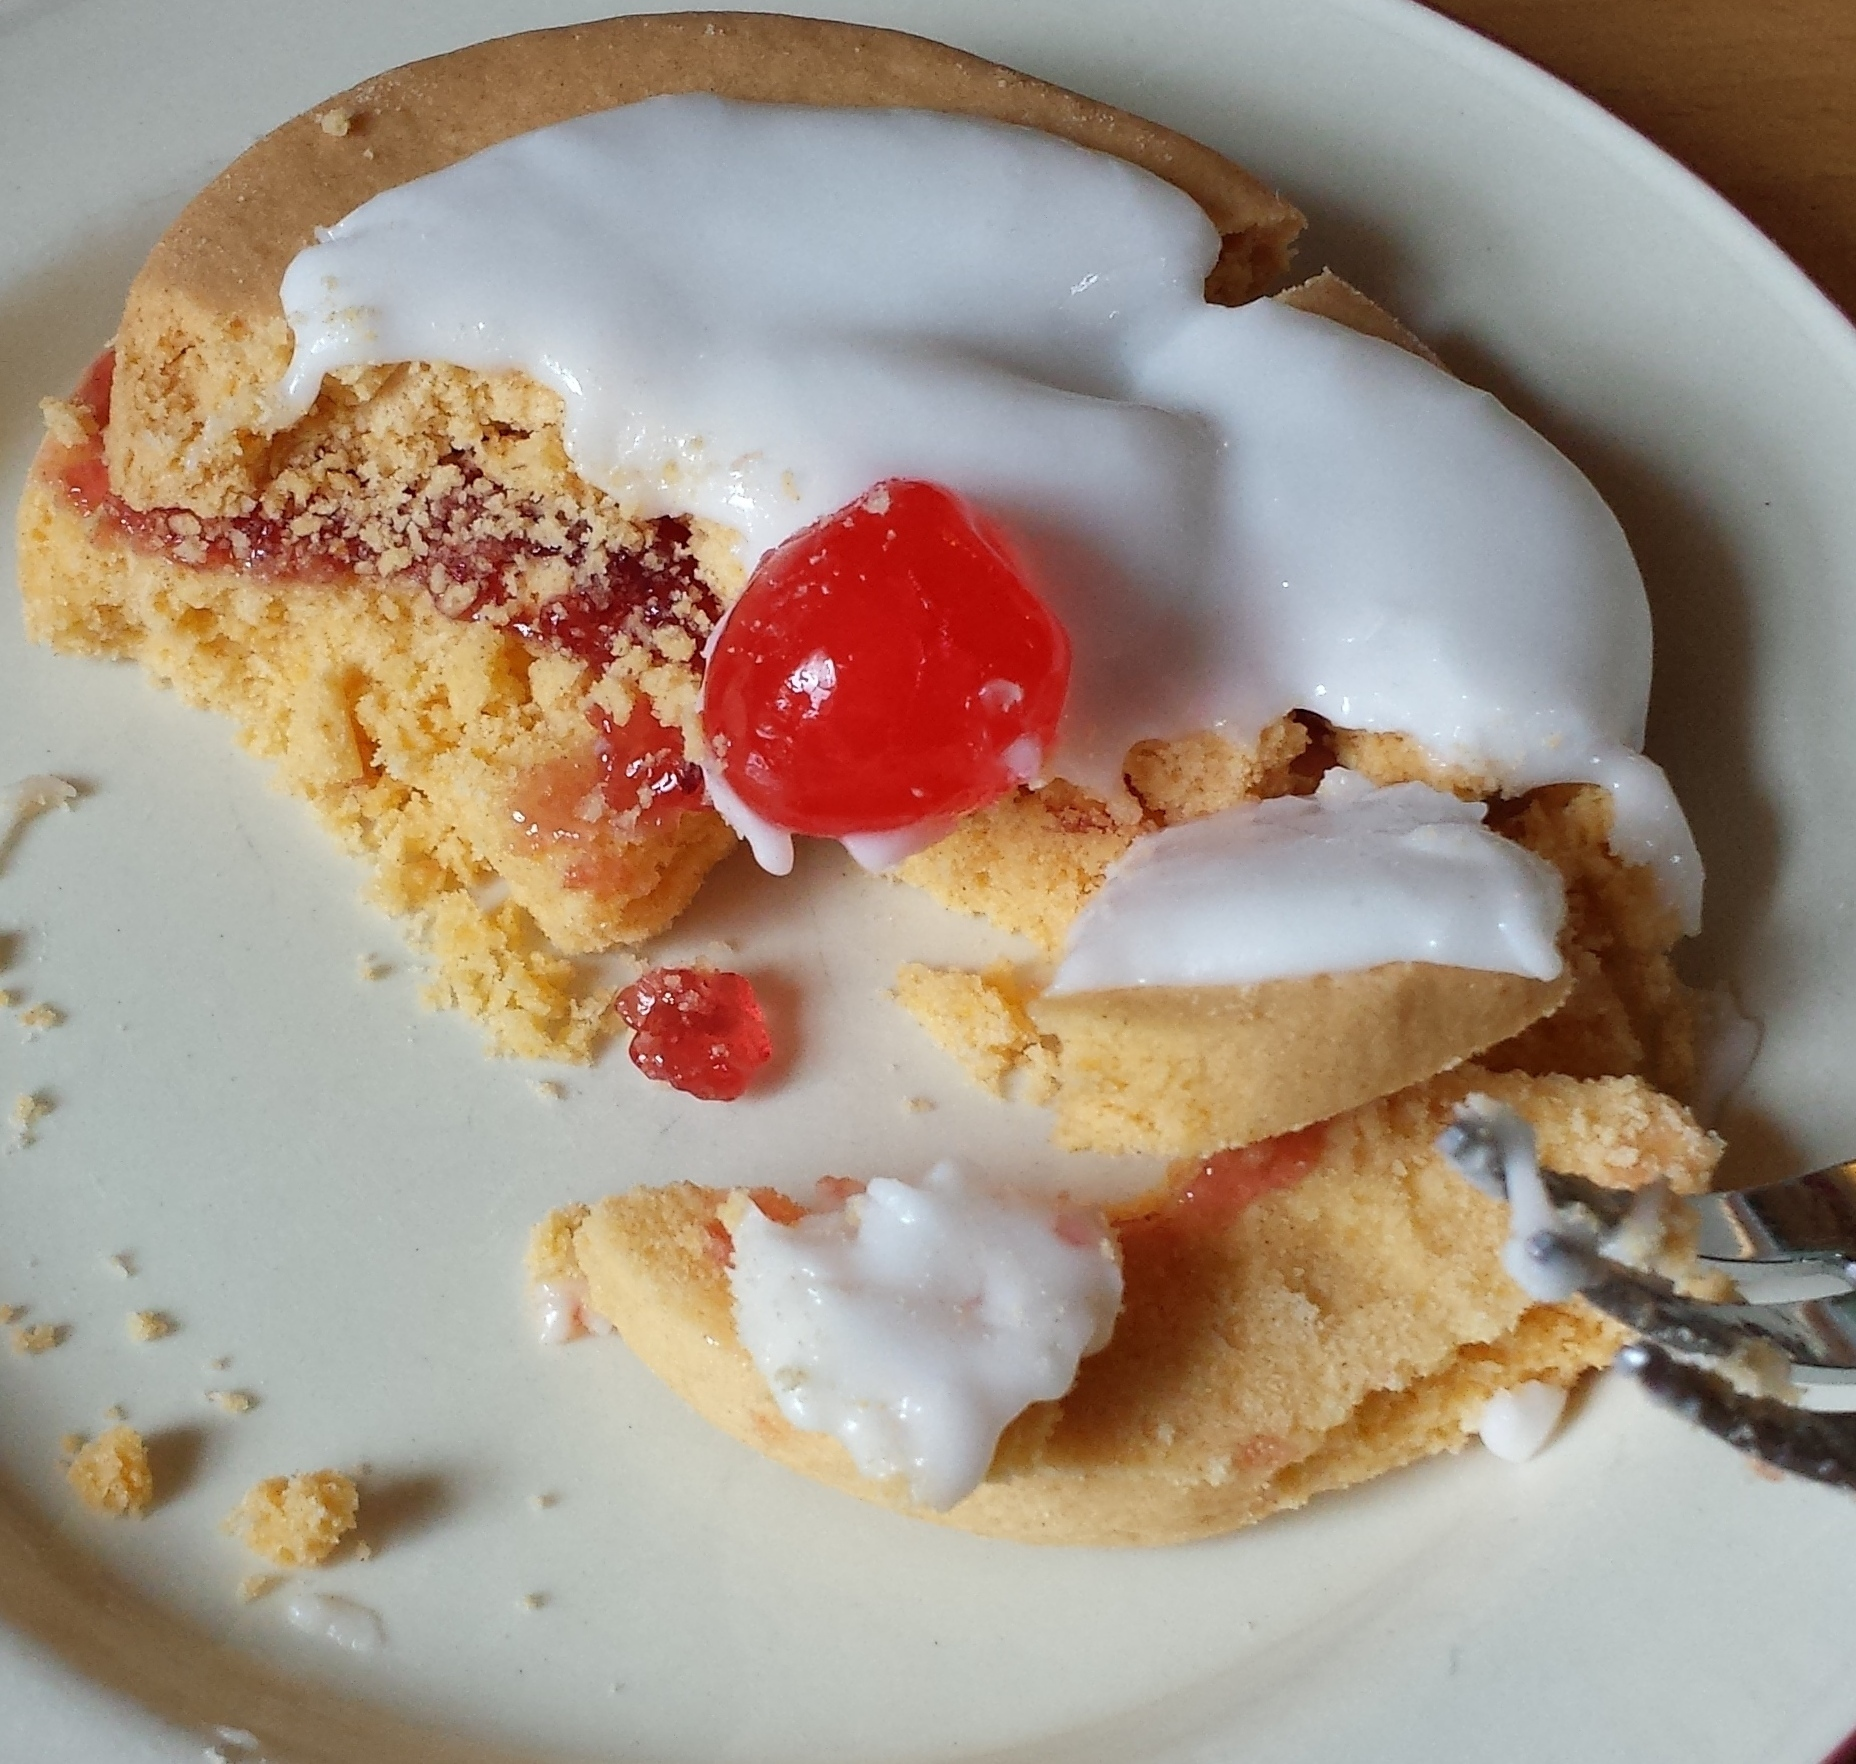 Uncovering the past with Imperial/Empire Biscuits